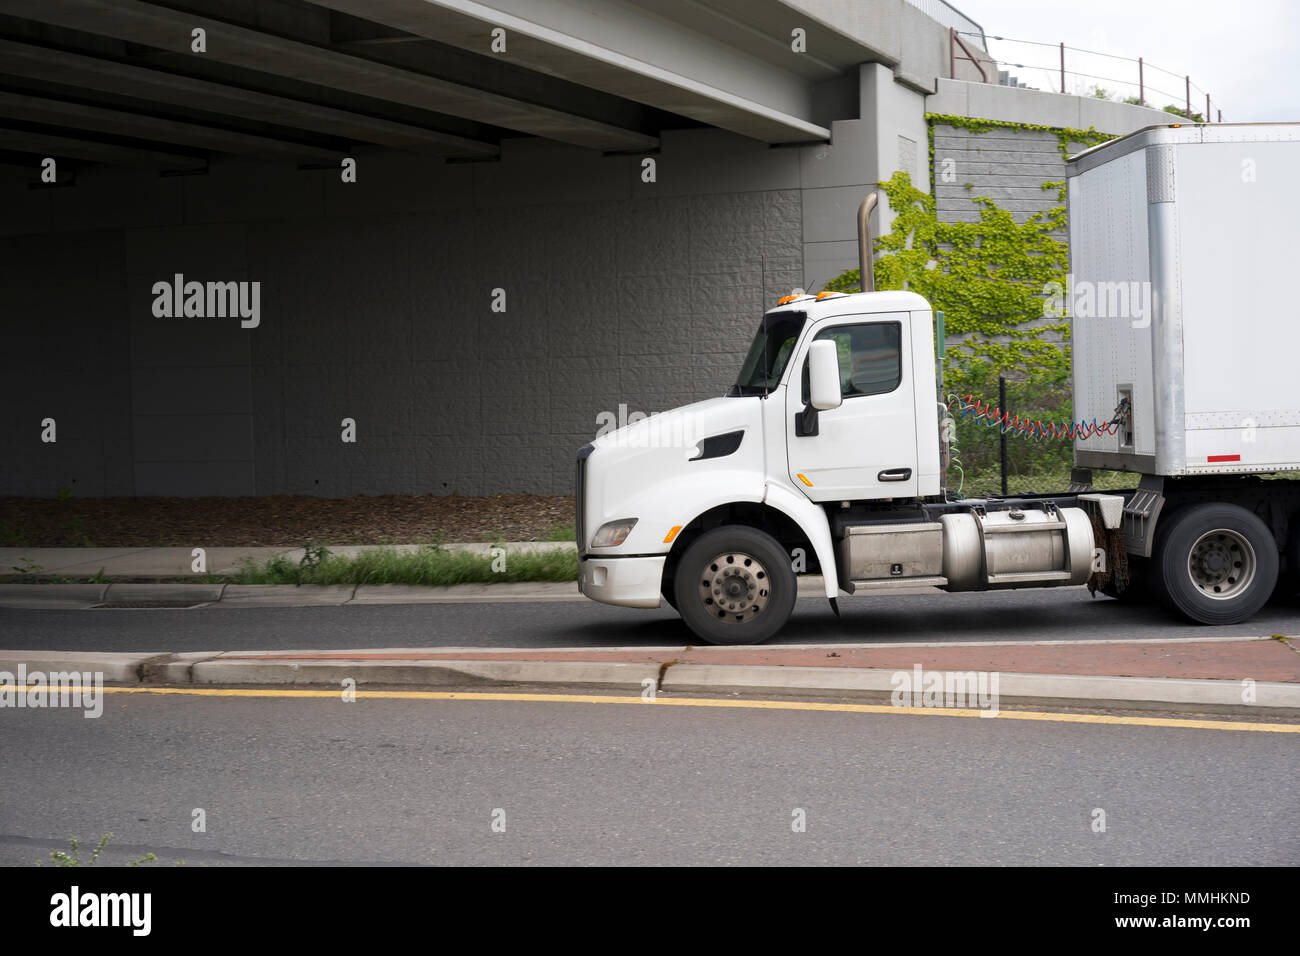 Profile of day cab big rig white semi truck for local transportation